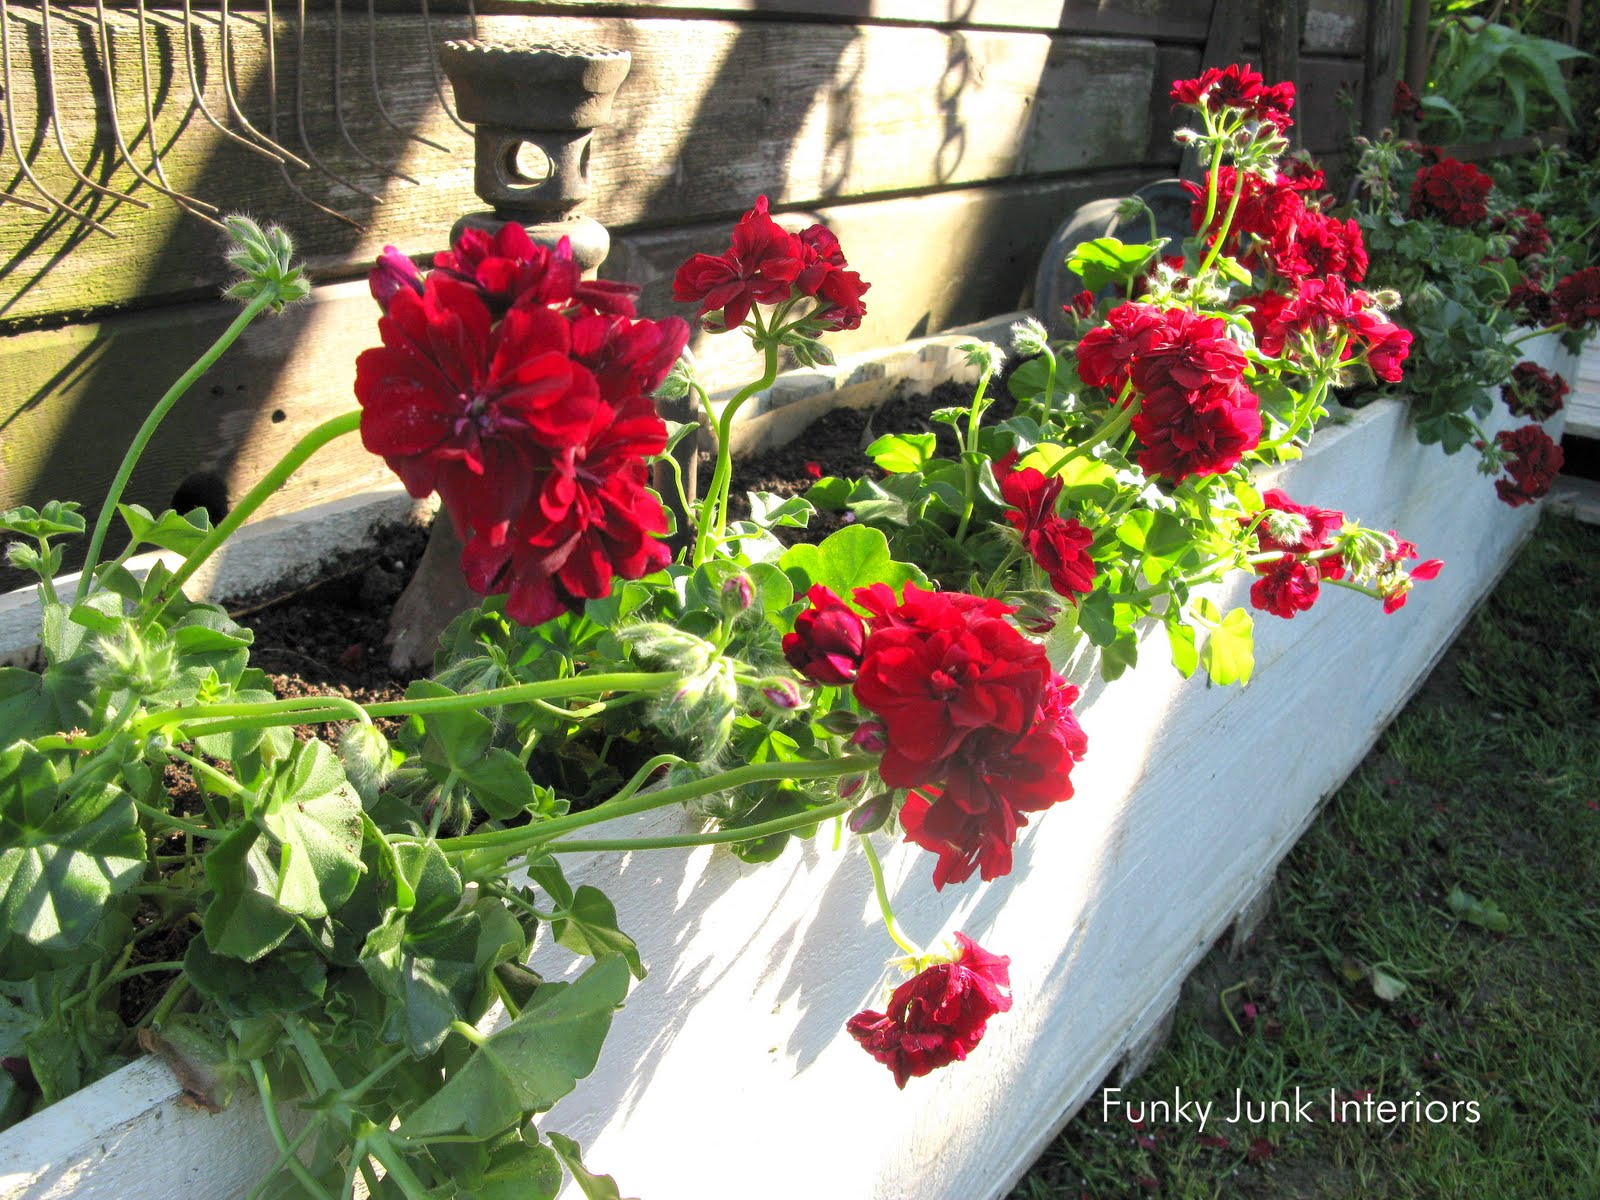 Decorating the great outdoors with junk for Gitter Done Funky